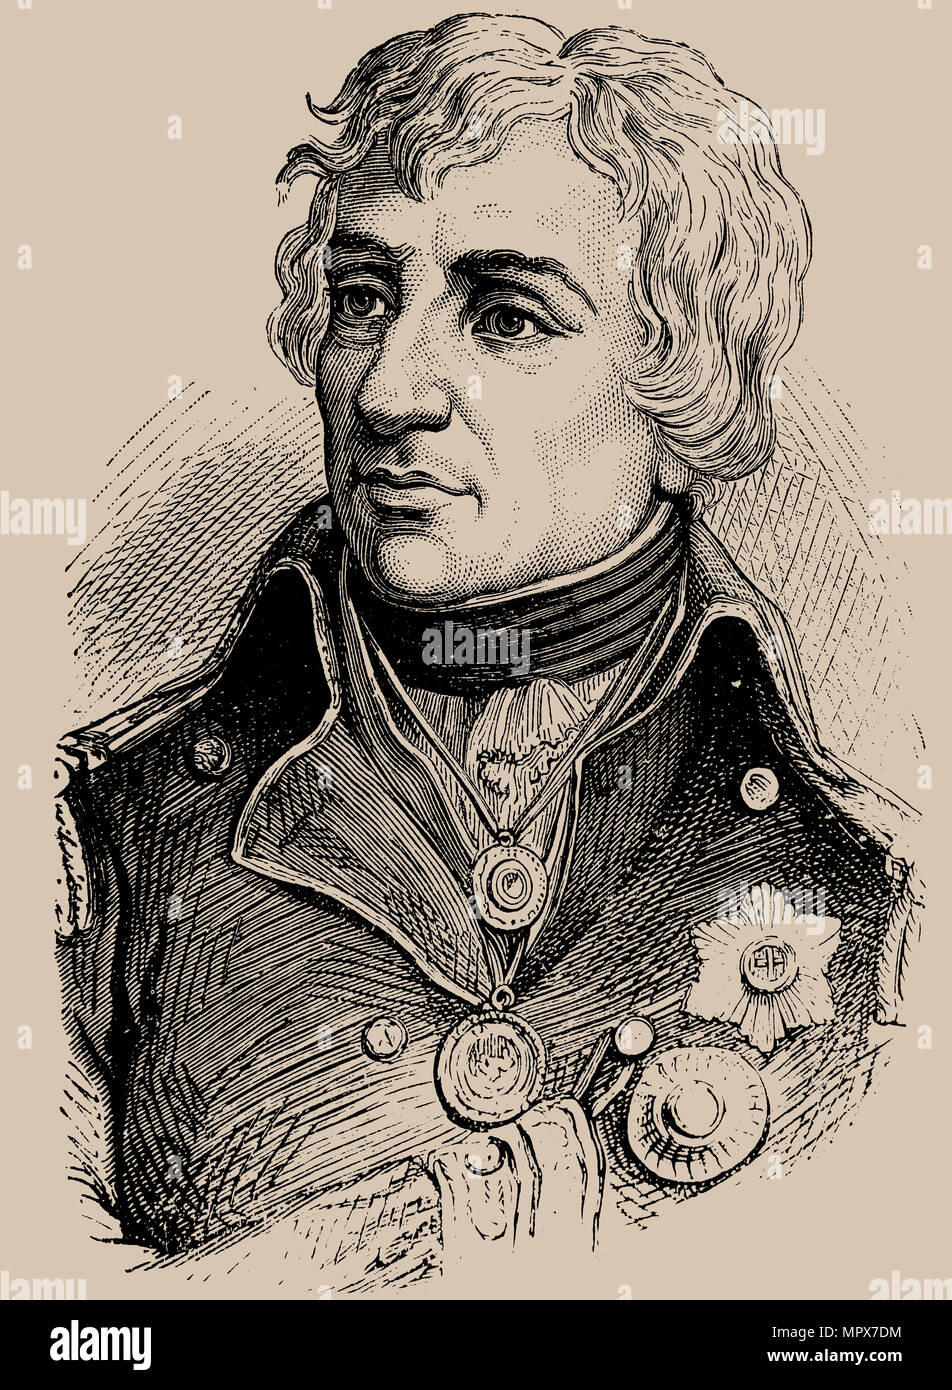 Vice-Admiral Horatio Nelson (1758-1805), 1889. - Stock Image